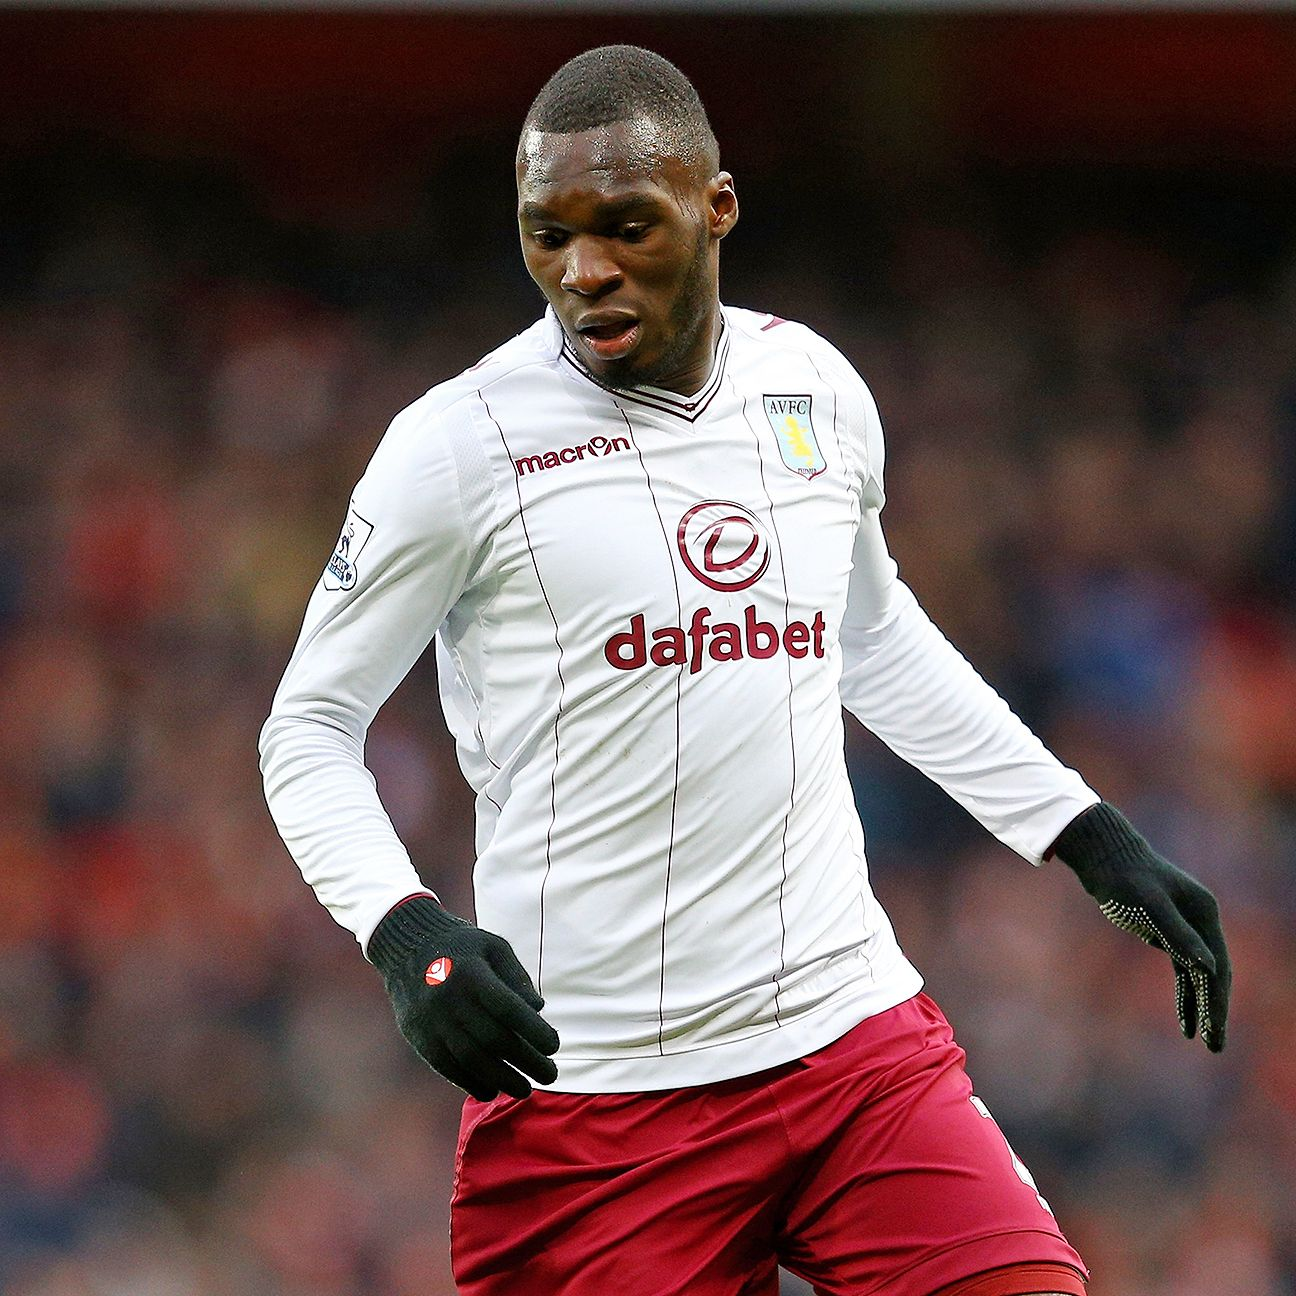 Villa fans would like to see Christian Benteke in action on a counterattack, rather than waiting for a hopeful ball from midfield.